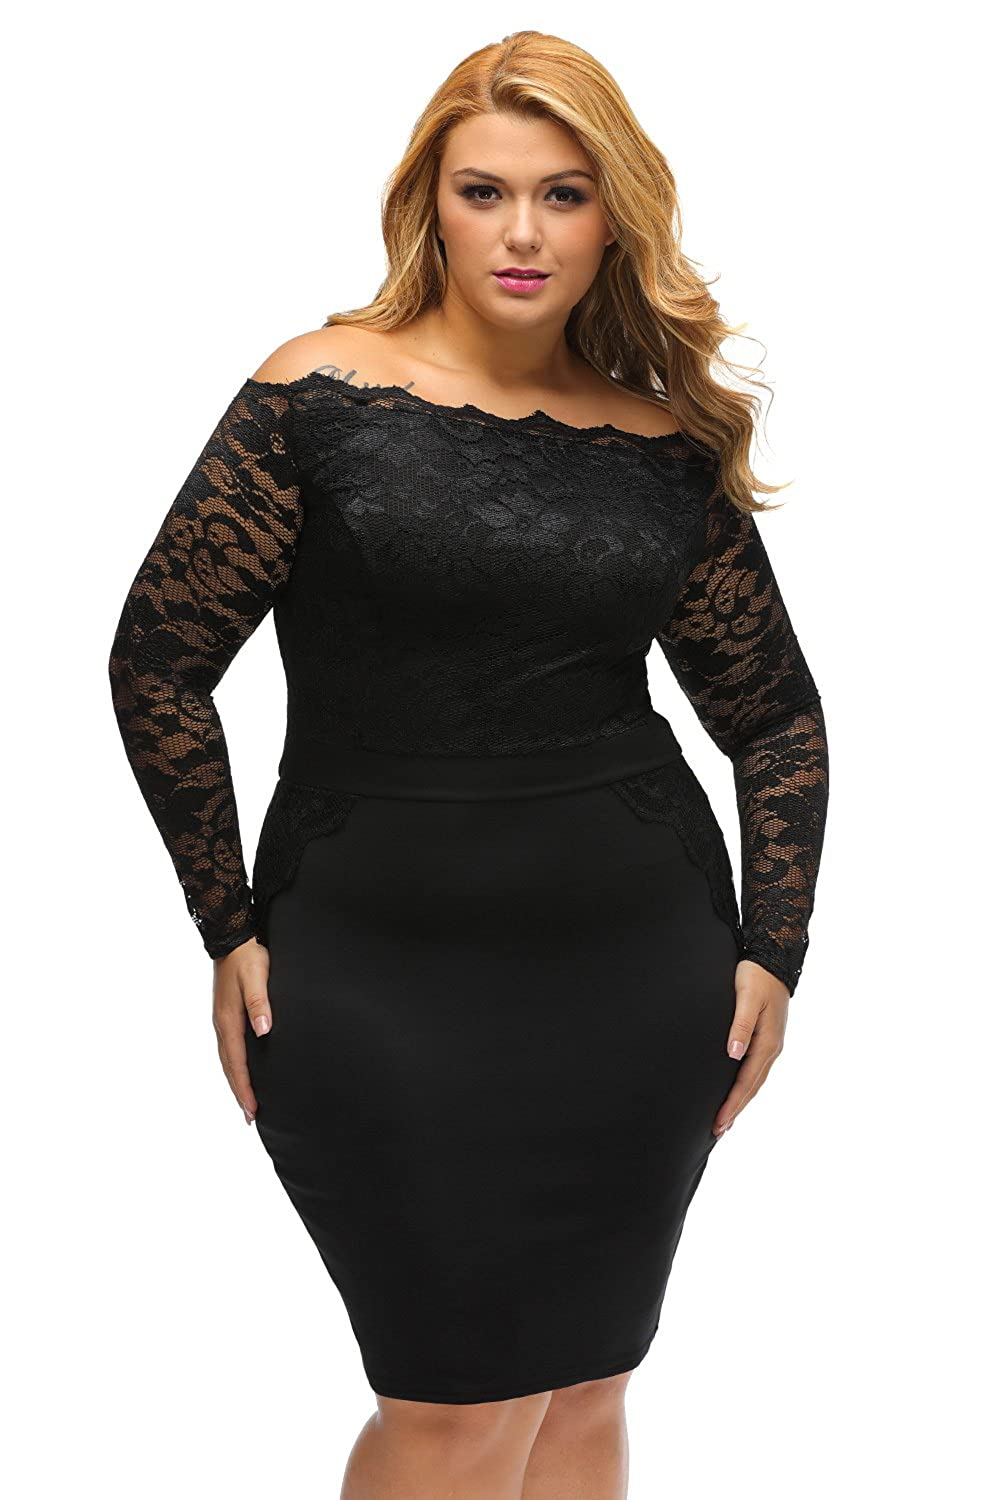 XAKALAKA Plus Size Long Sleeve Off Shoulder Lace Bodycon Cocktail Party Dress